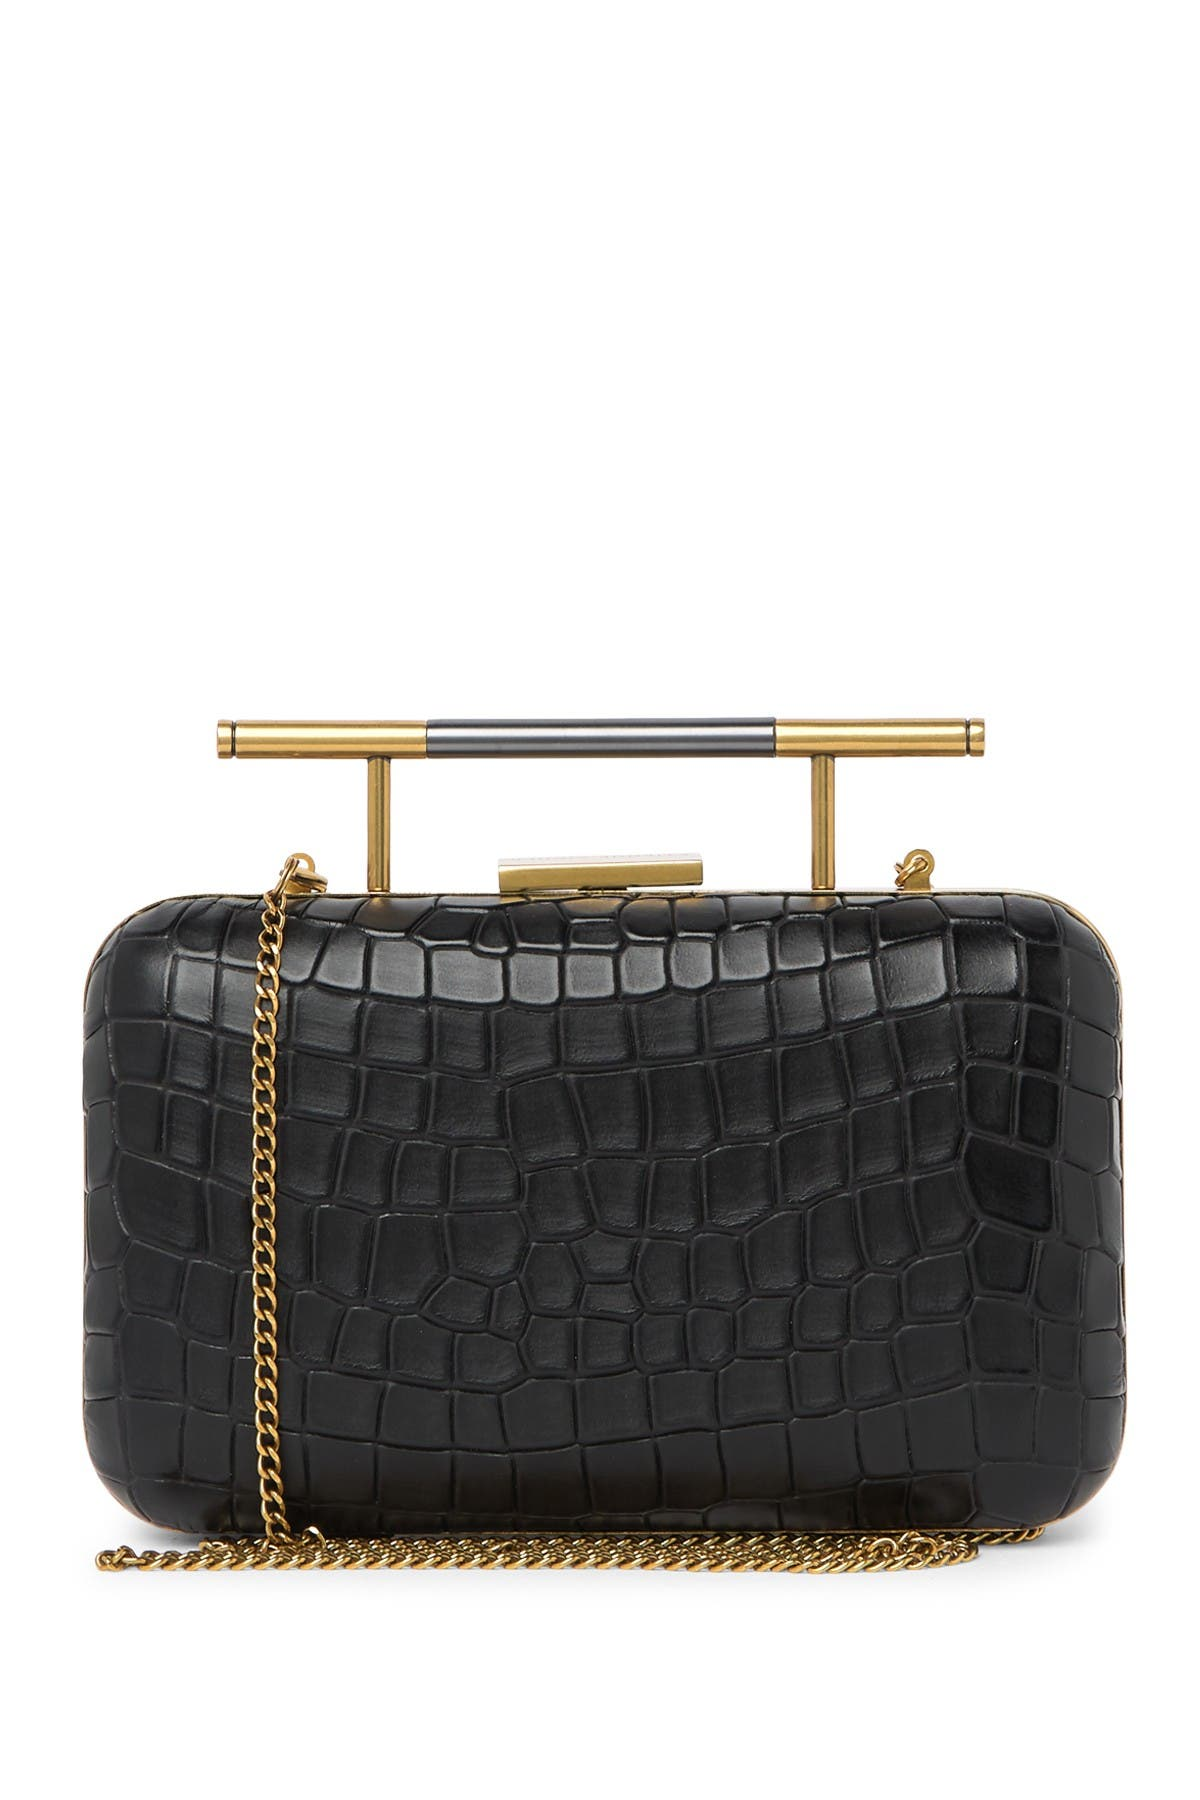 Image of Etienne Aigner Grace Croc Embossed Leather MInaudiere